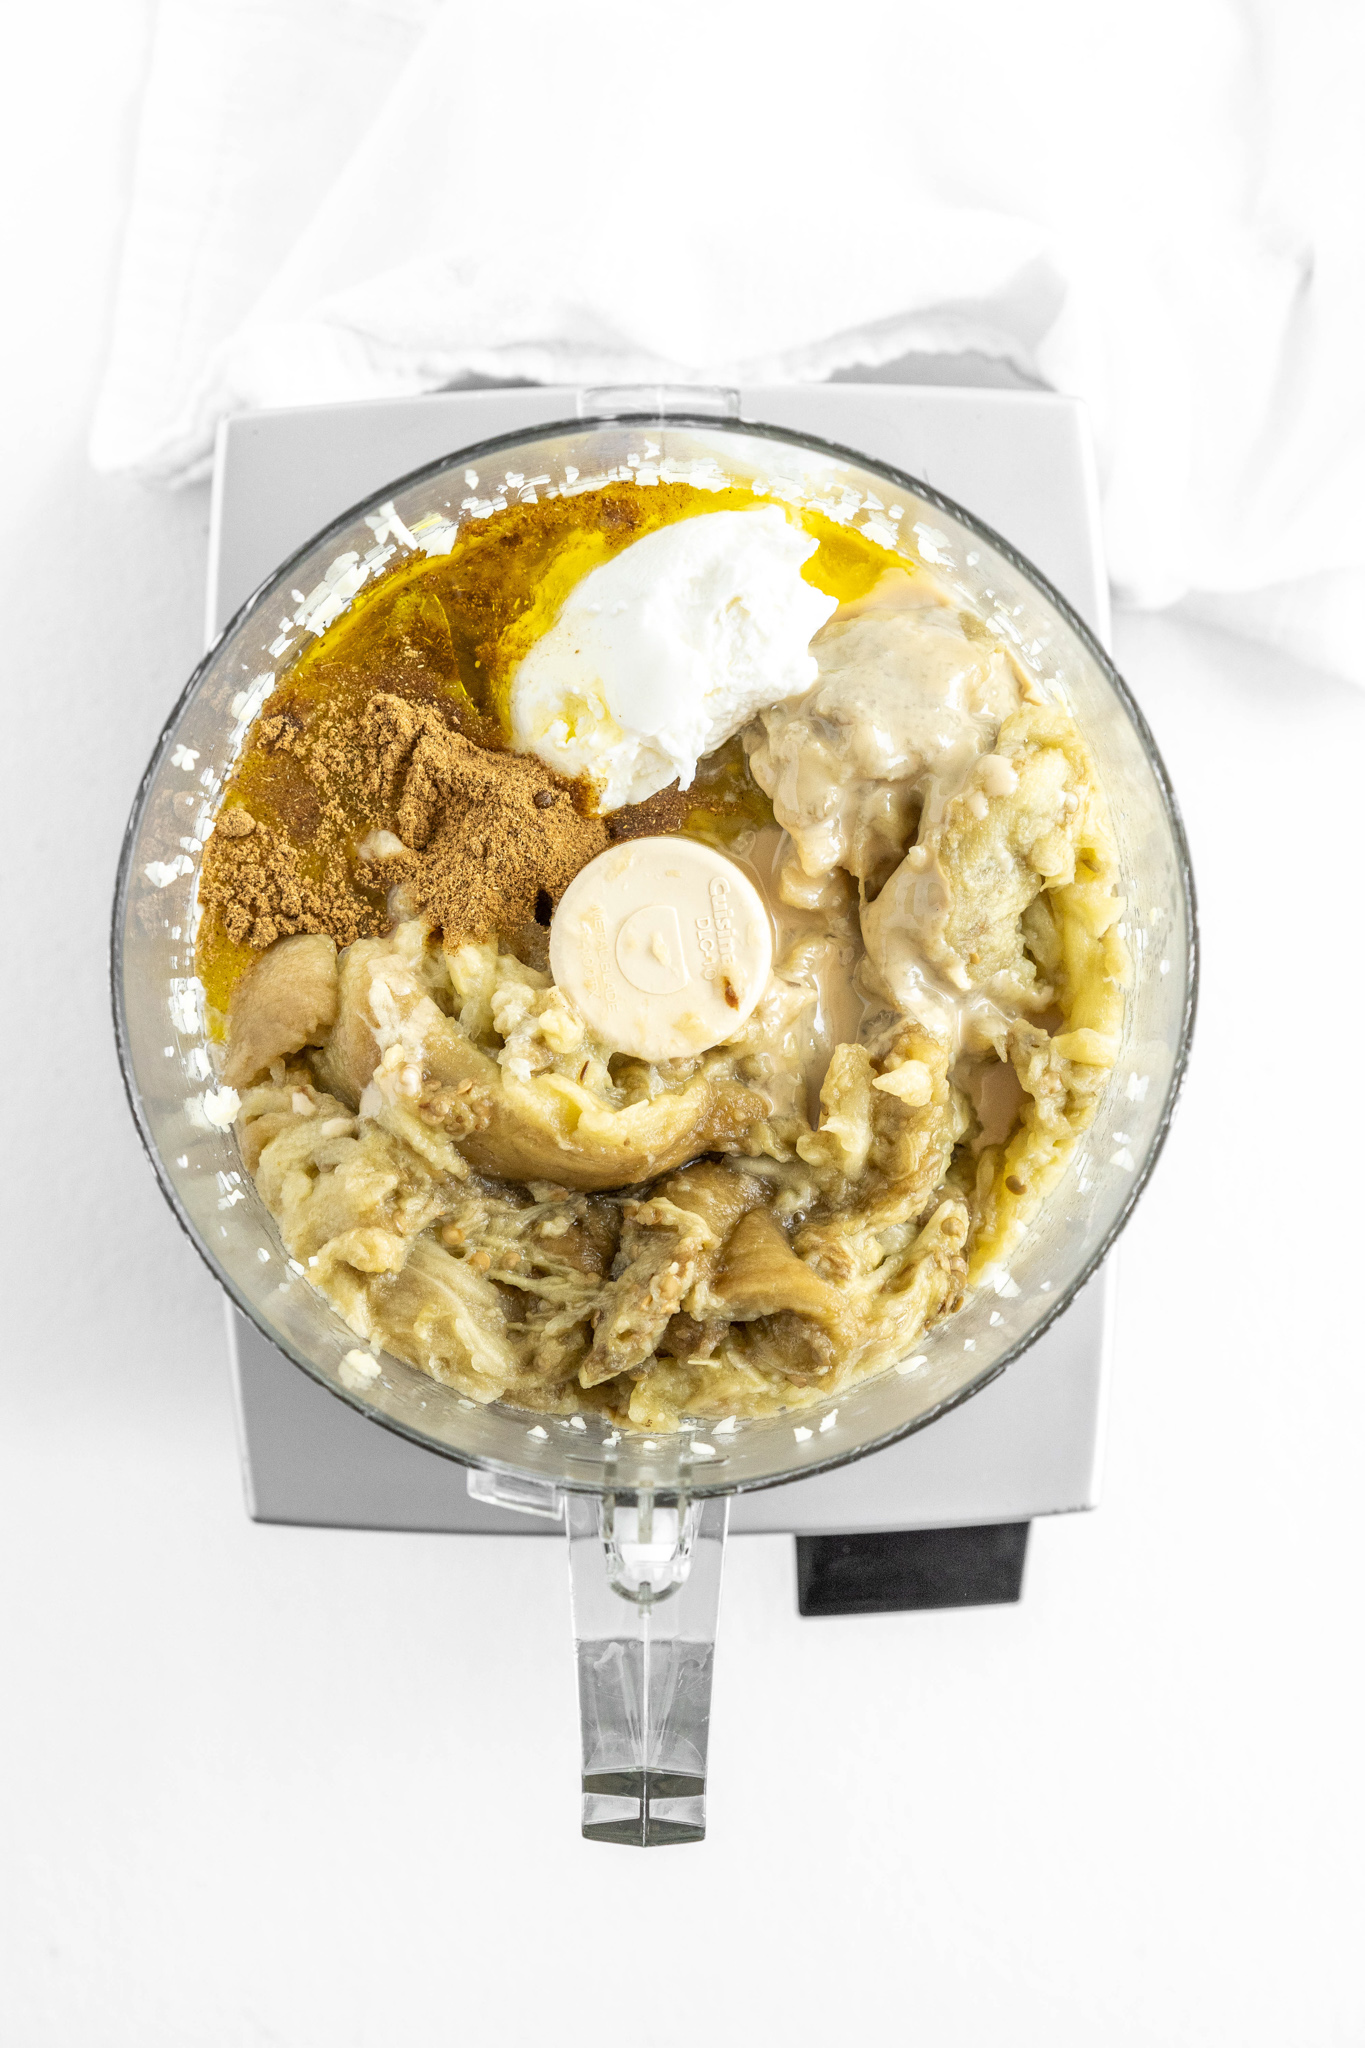 Baba Ghanoush in a food processor.